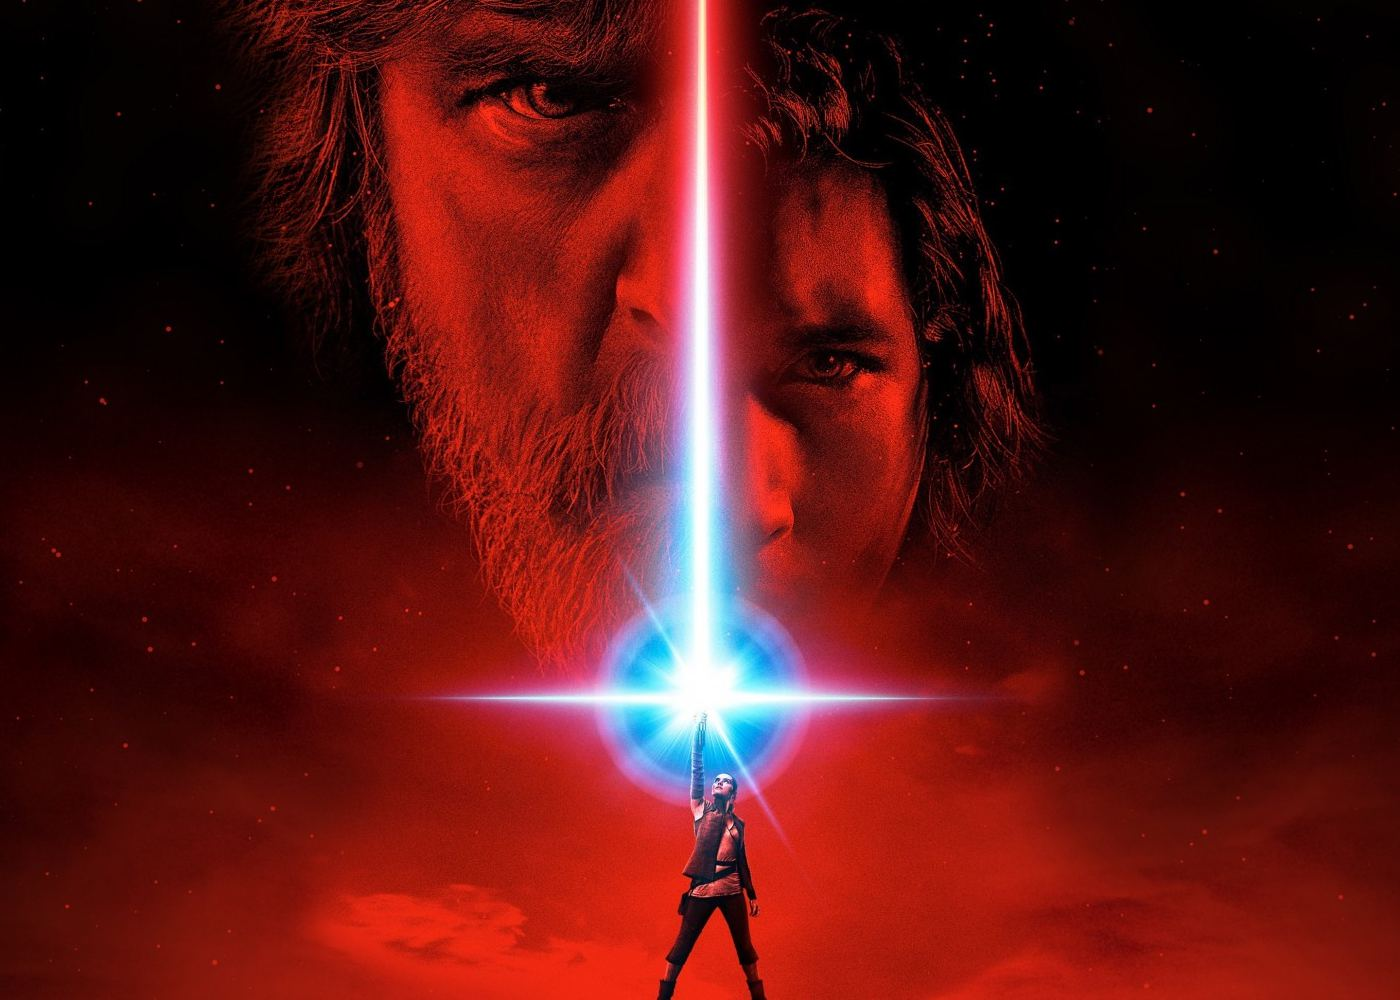 Rian Johnson Reveals the Identity of The Last Jedi